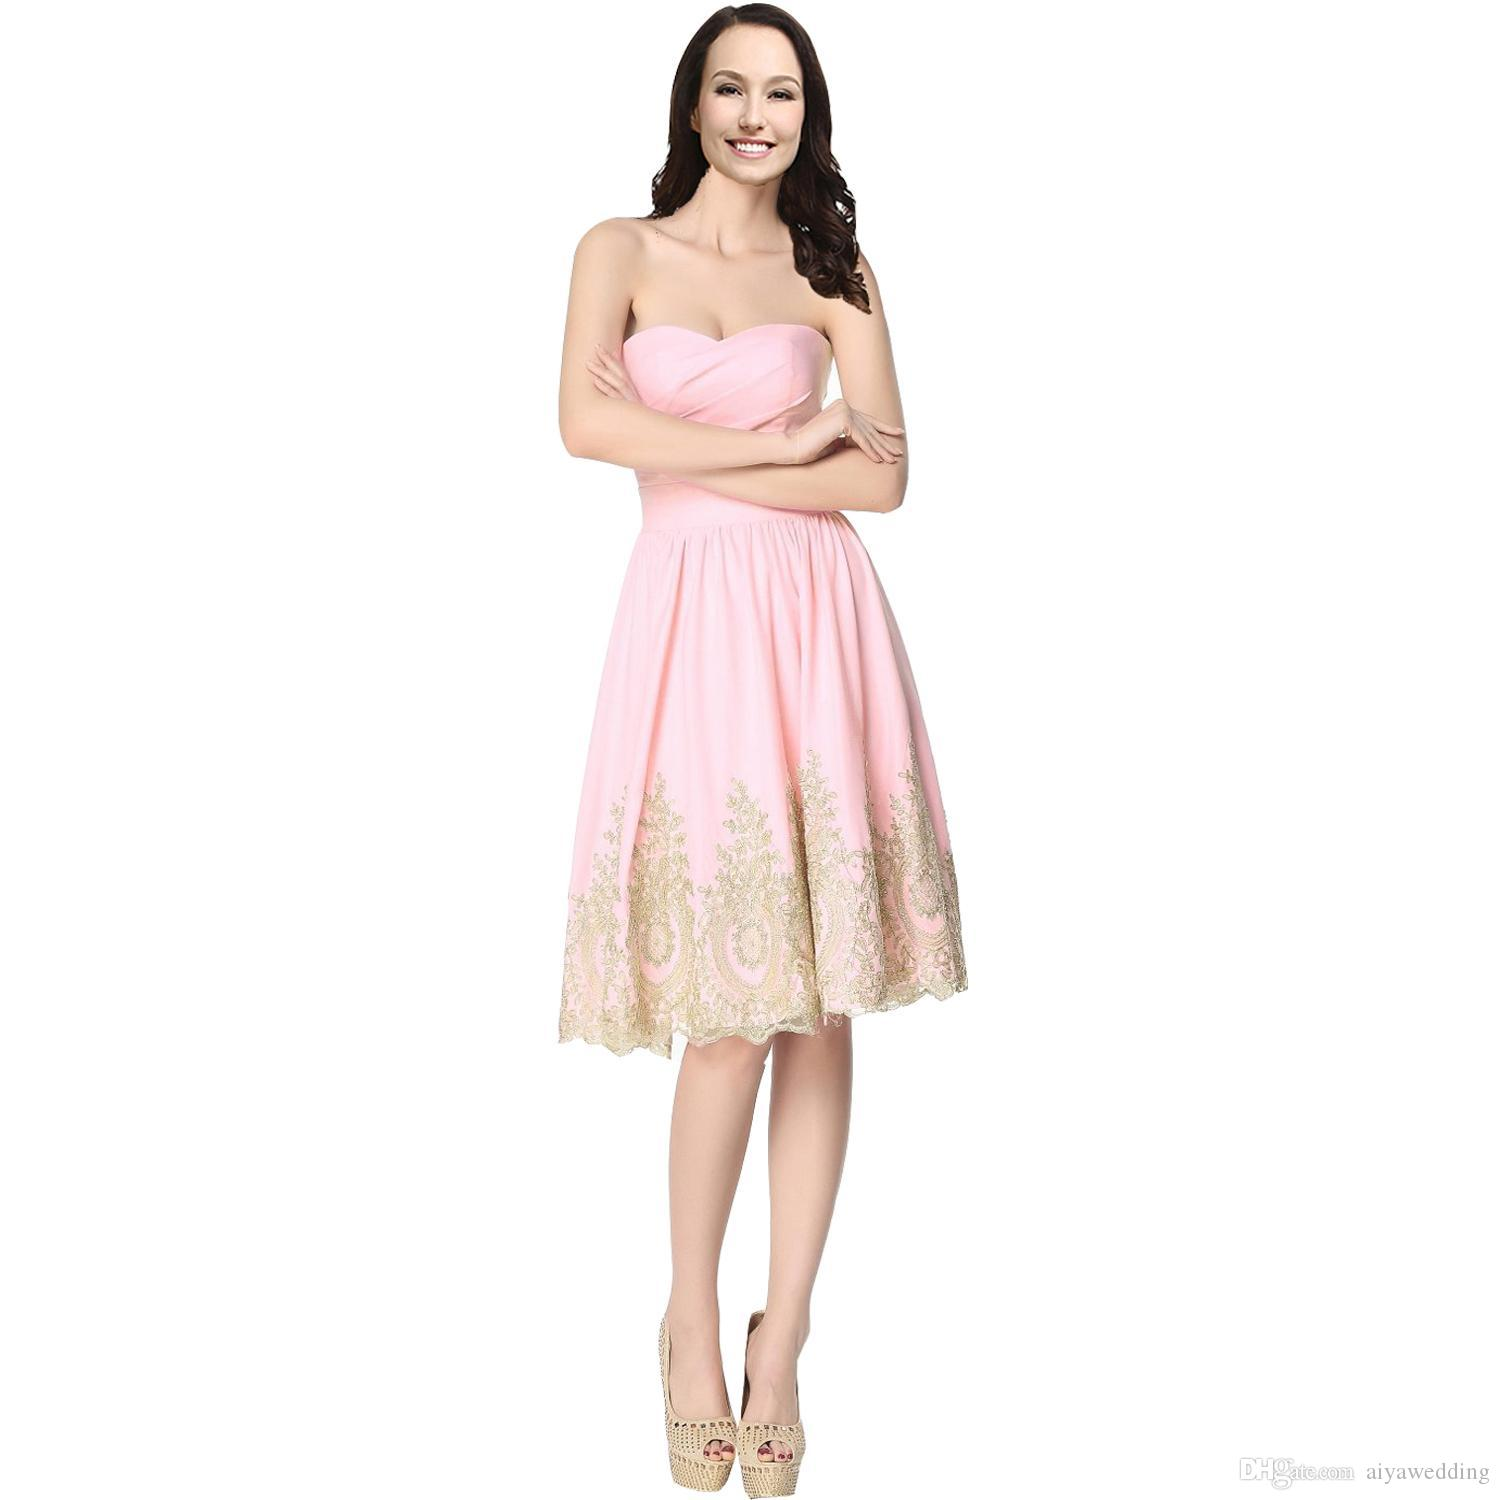 Gold Lace Short Homecoming Dresses Sweetheart Knee Length Simple Corset Prom Graduation Party Gowns Cheap 2019 Vestidos De Festa Pink